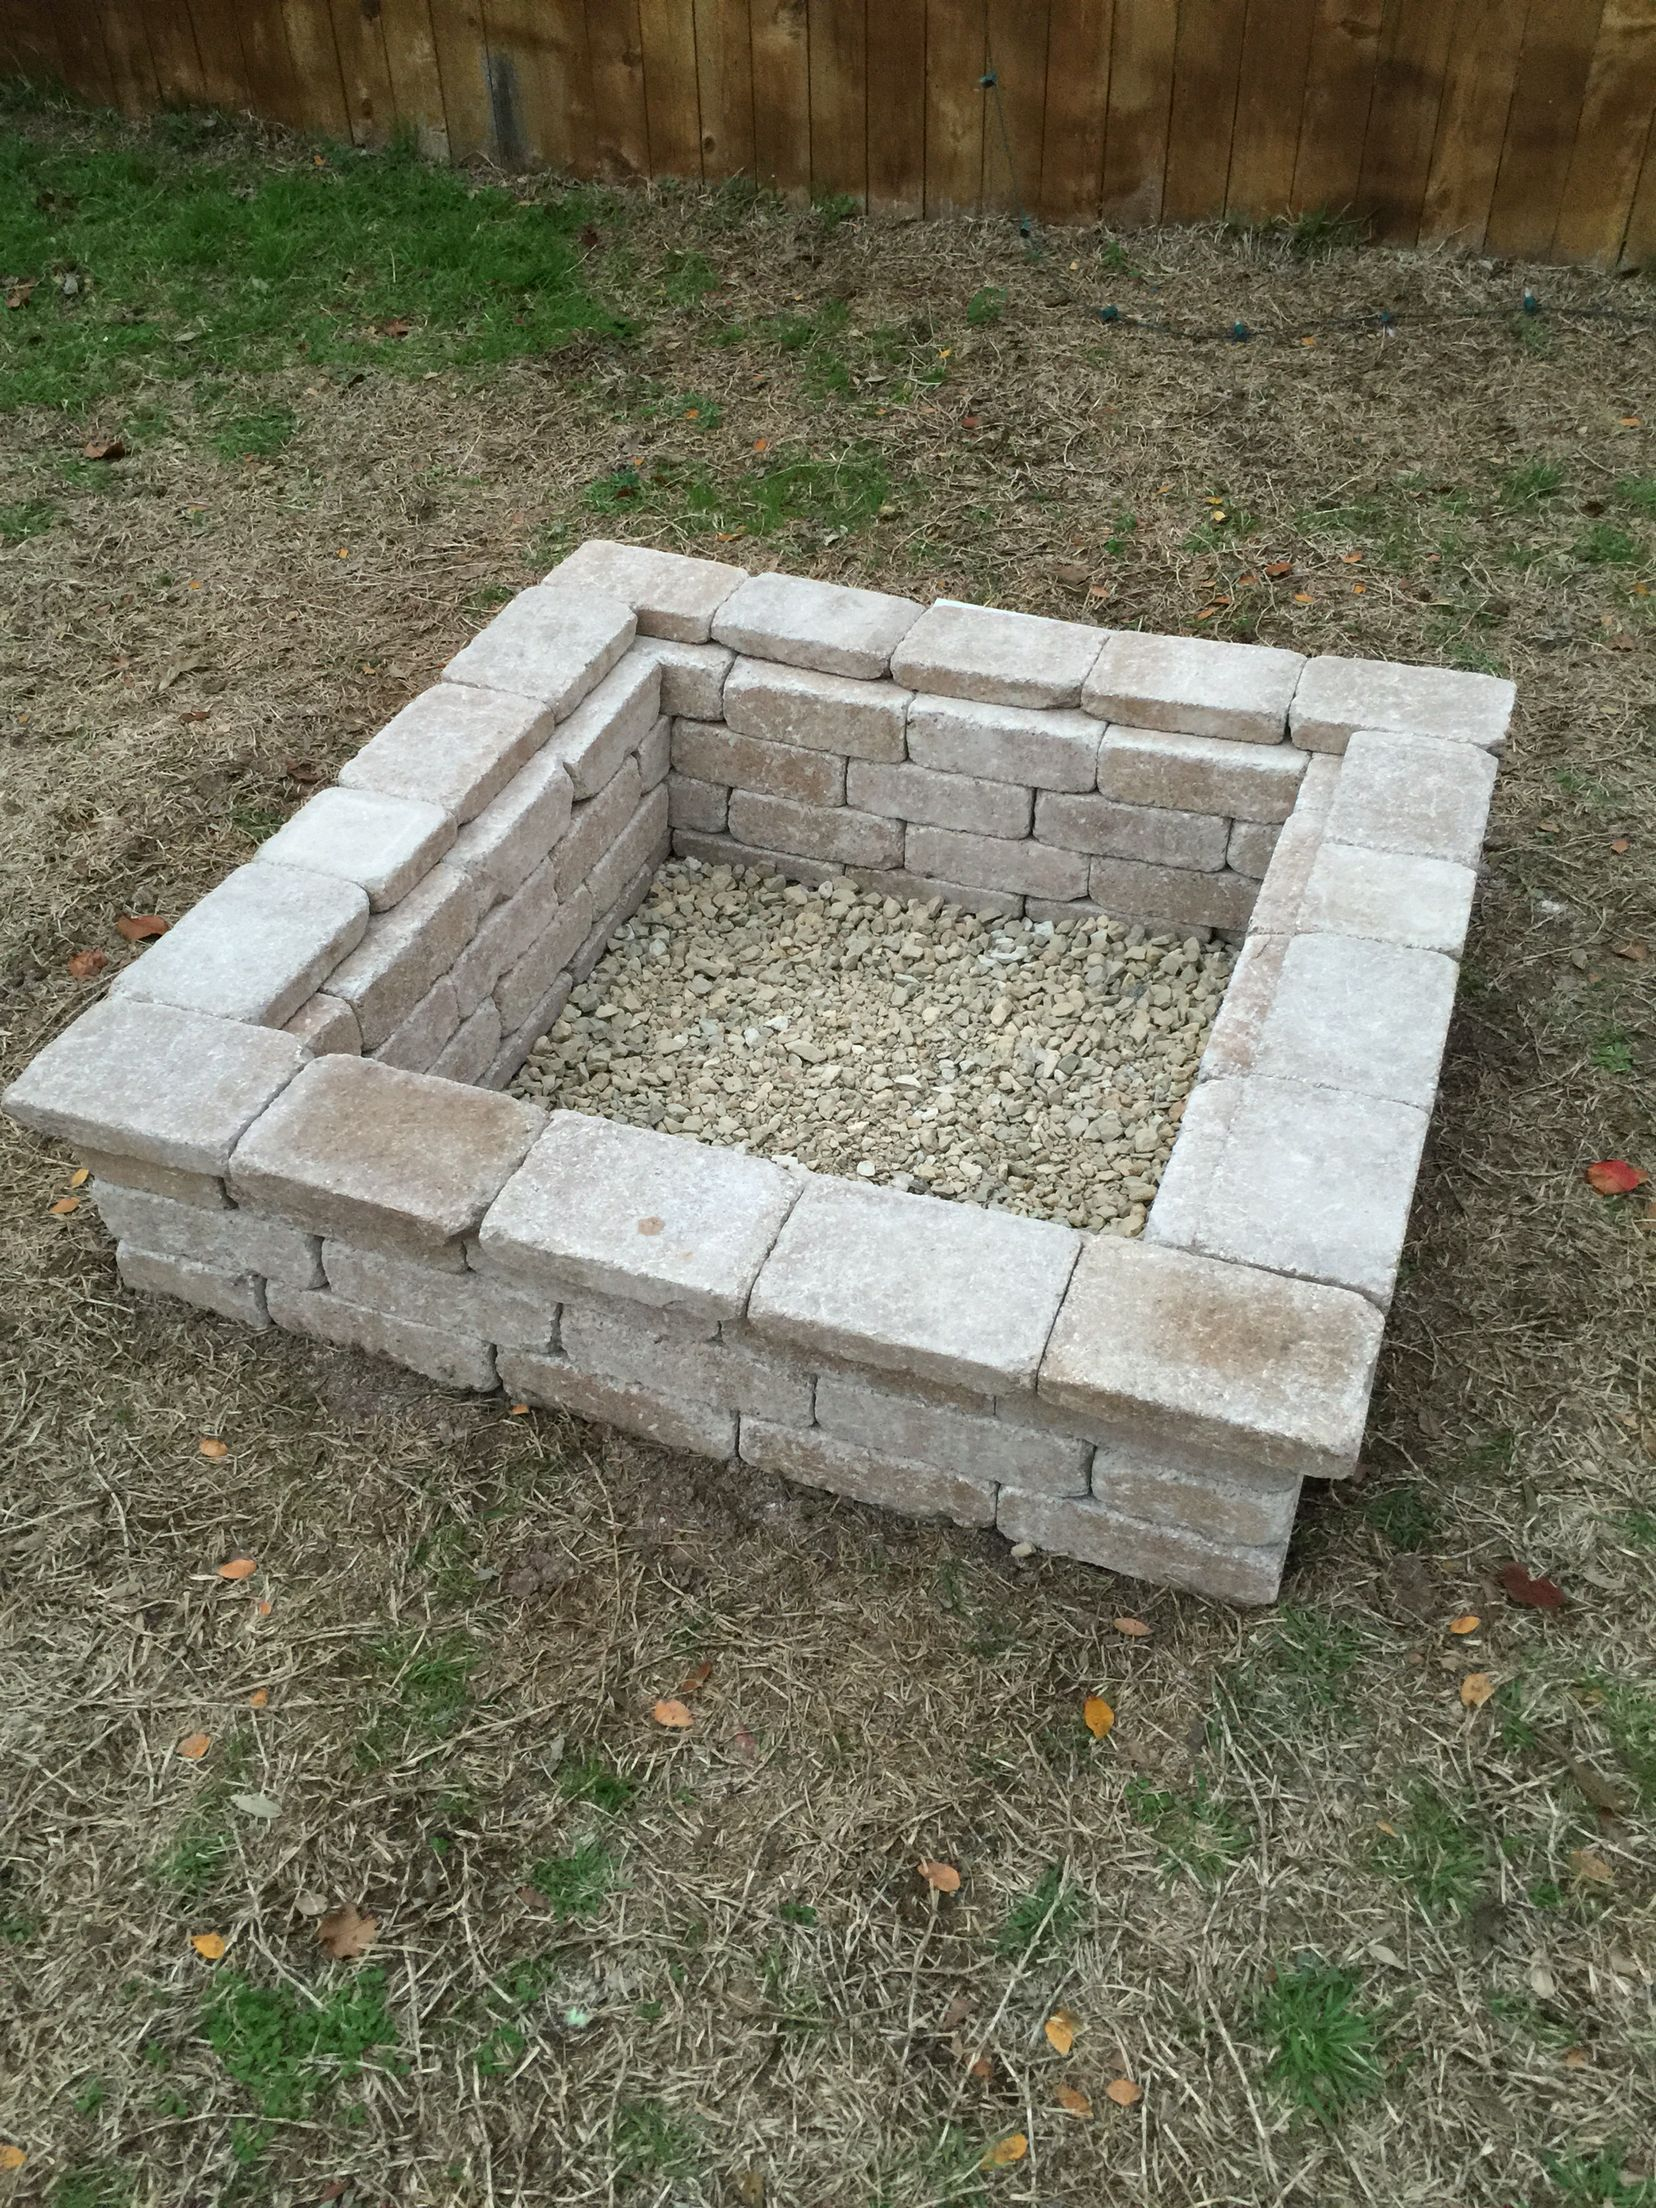 Our Backyard Firepit 1 Dig A Square Hole Six Inches Deep 2 Fill Flat Layer Of Landscape Gravel About In Ground Fire Pit Square Fire Pit Fire Pit Backyard